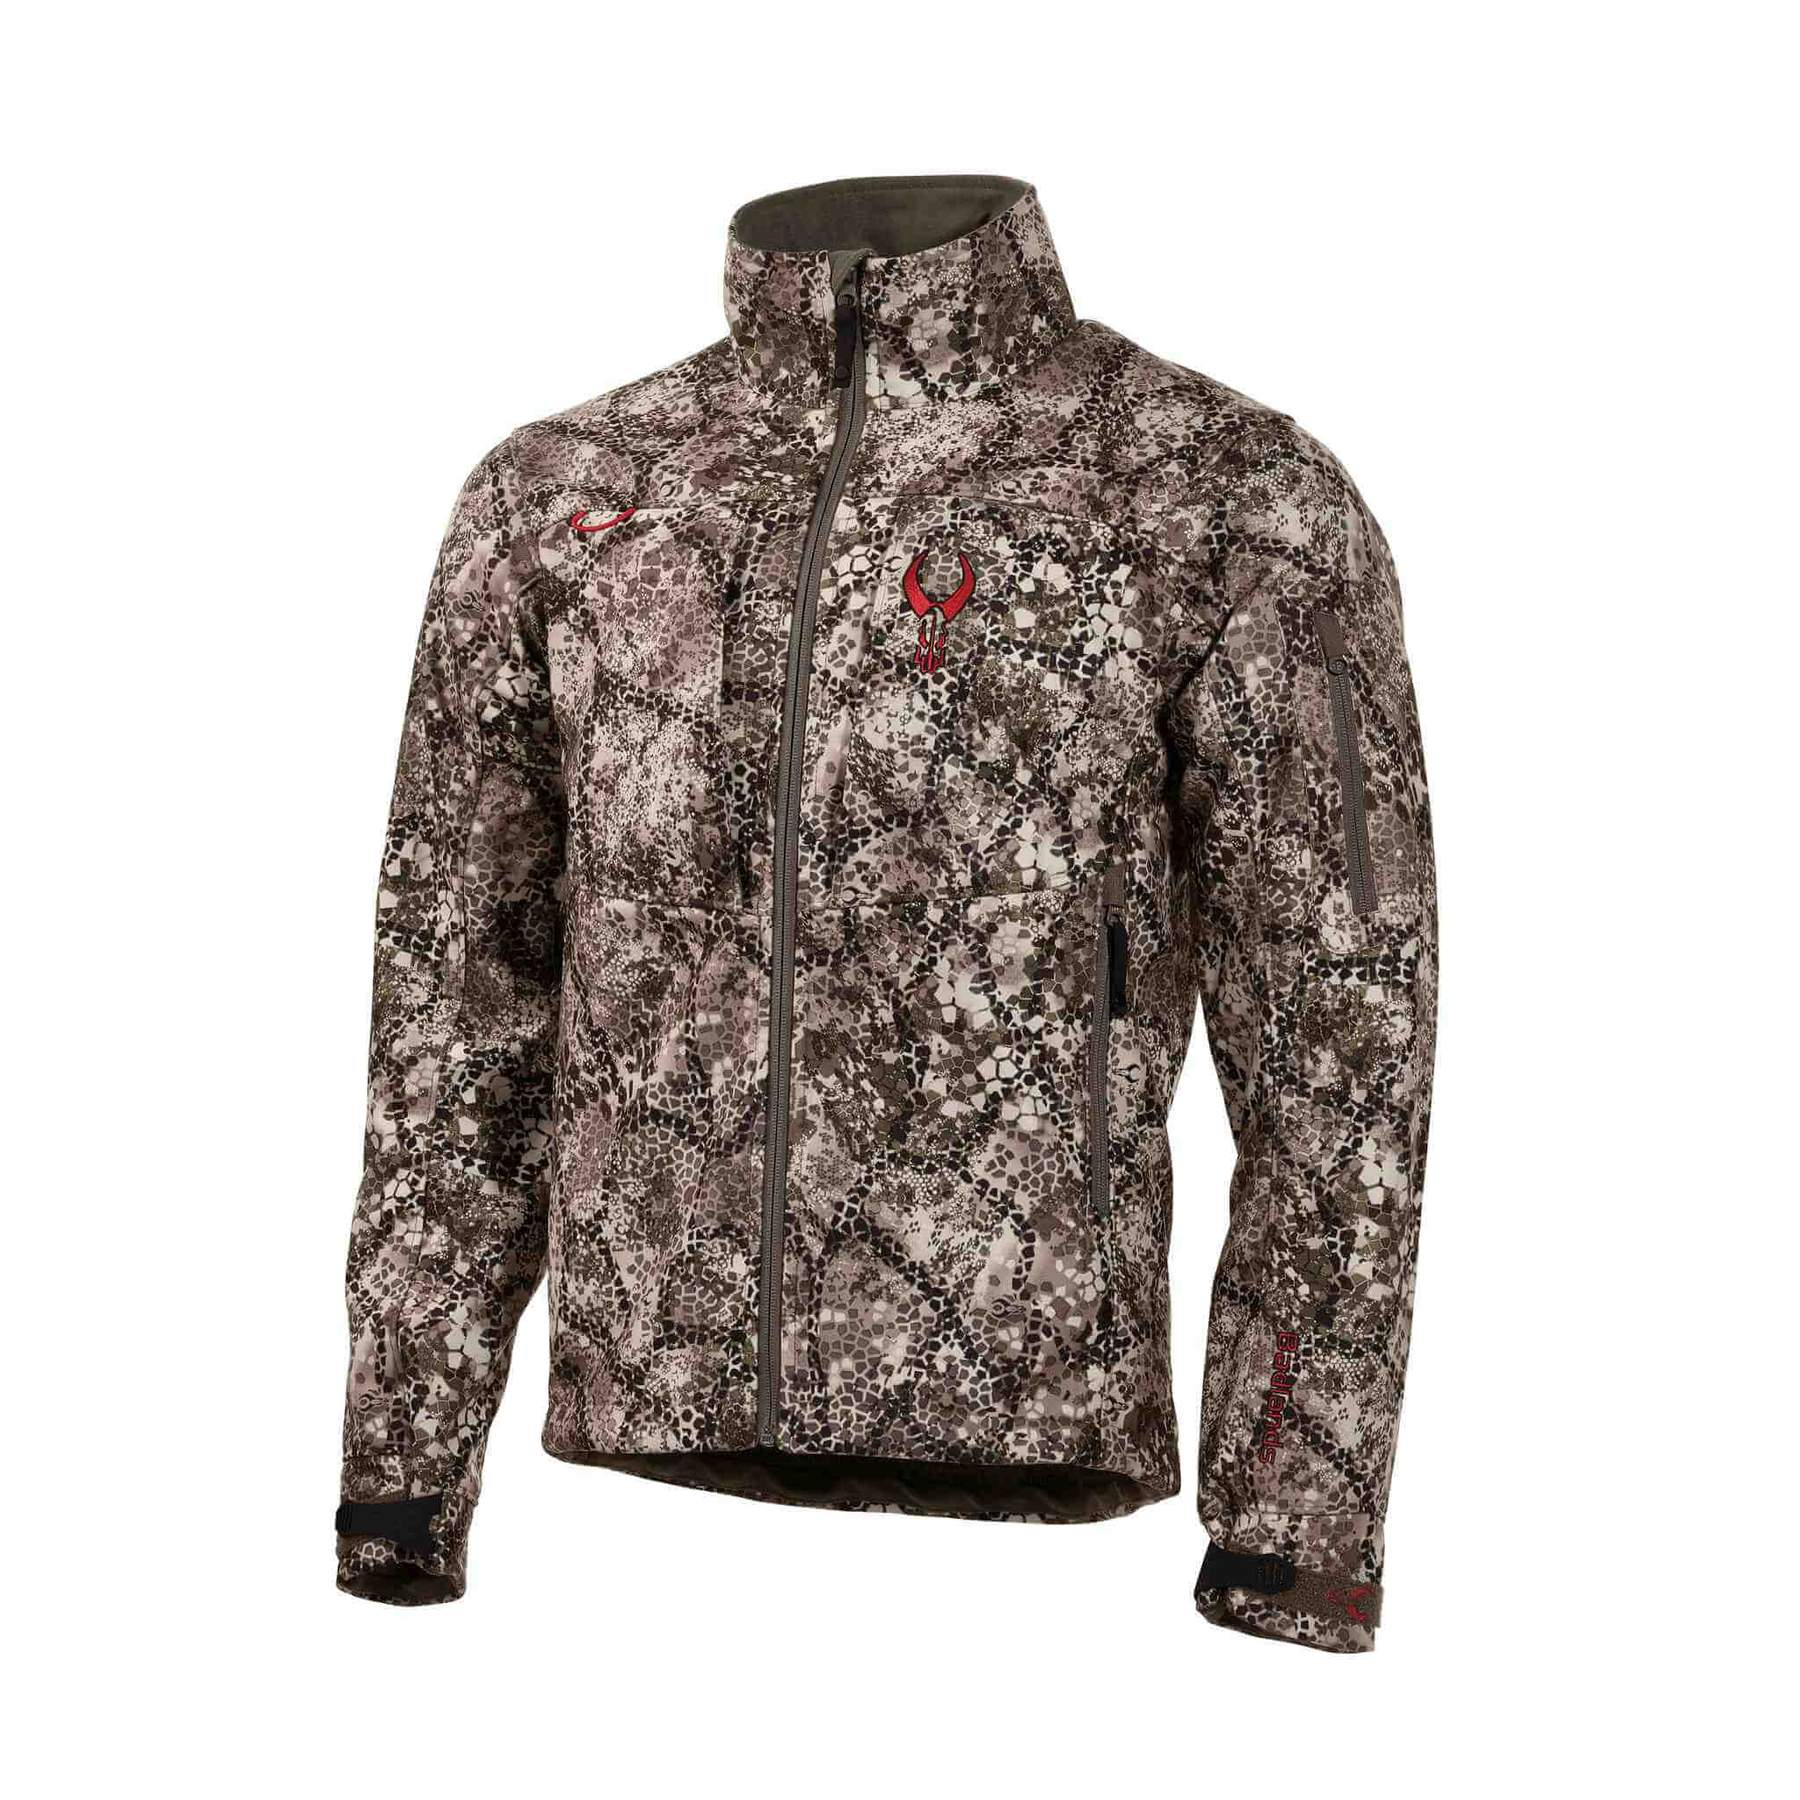 affordable hunting jackets